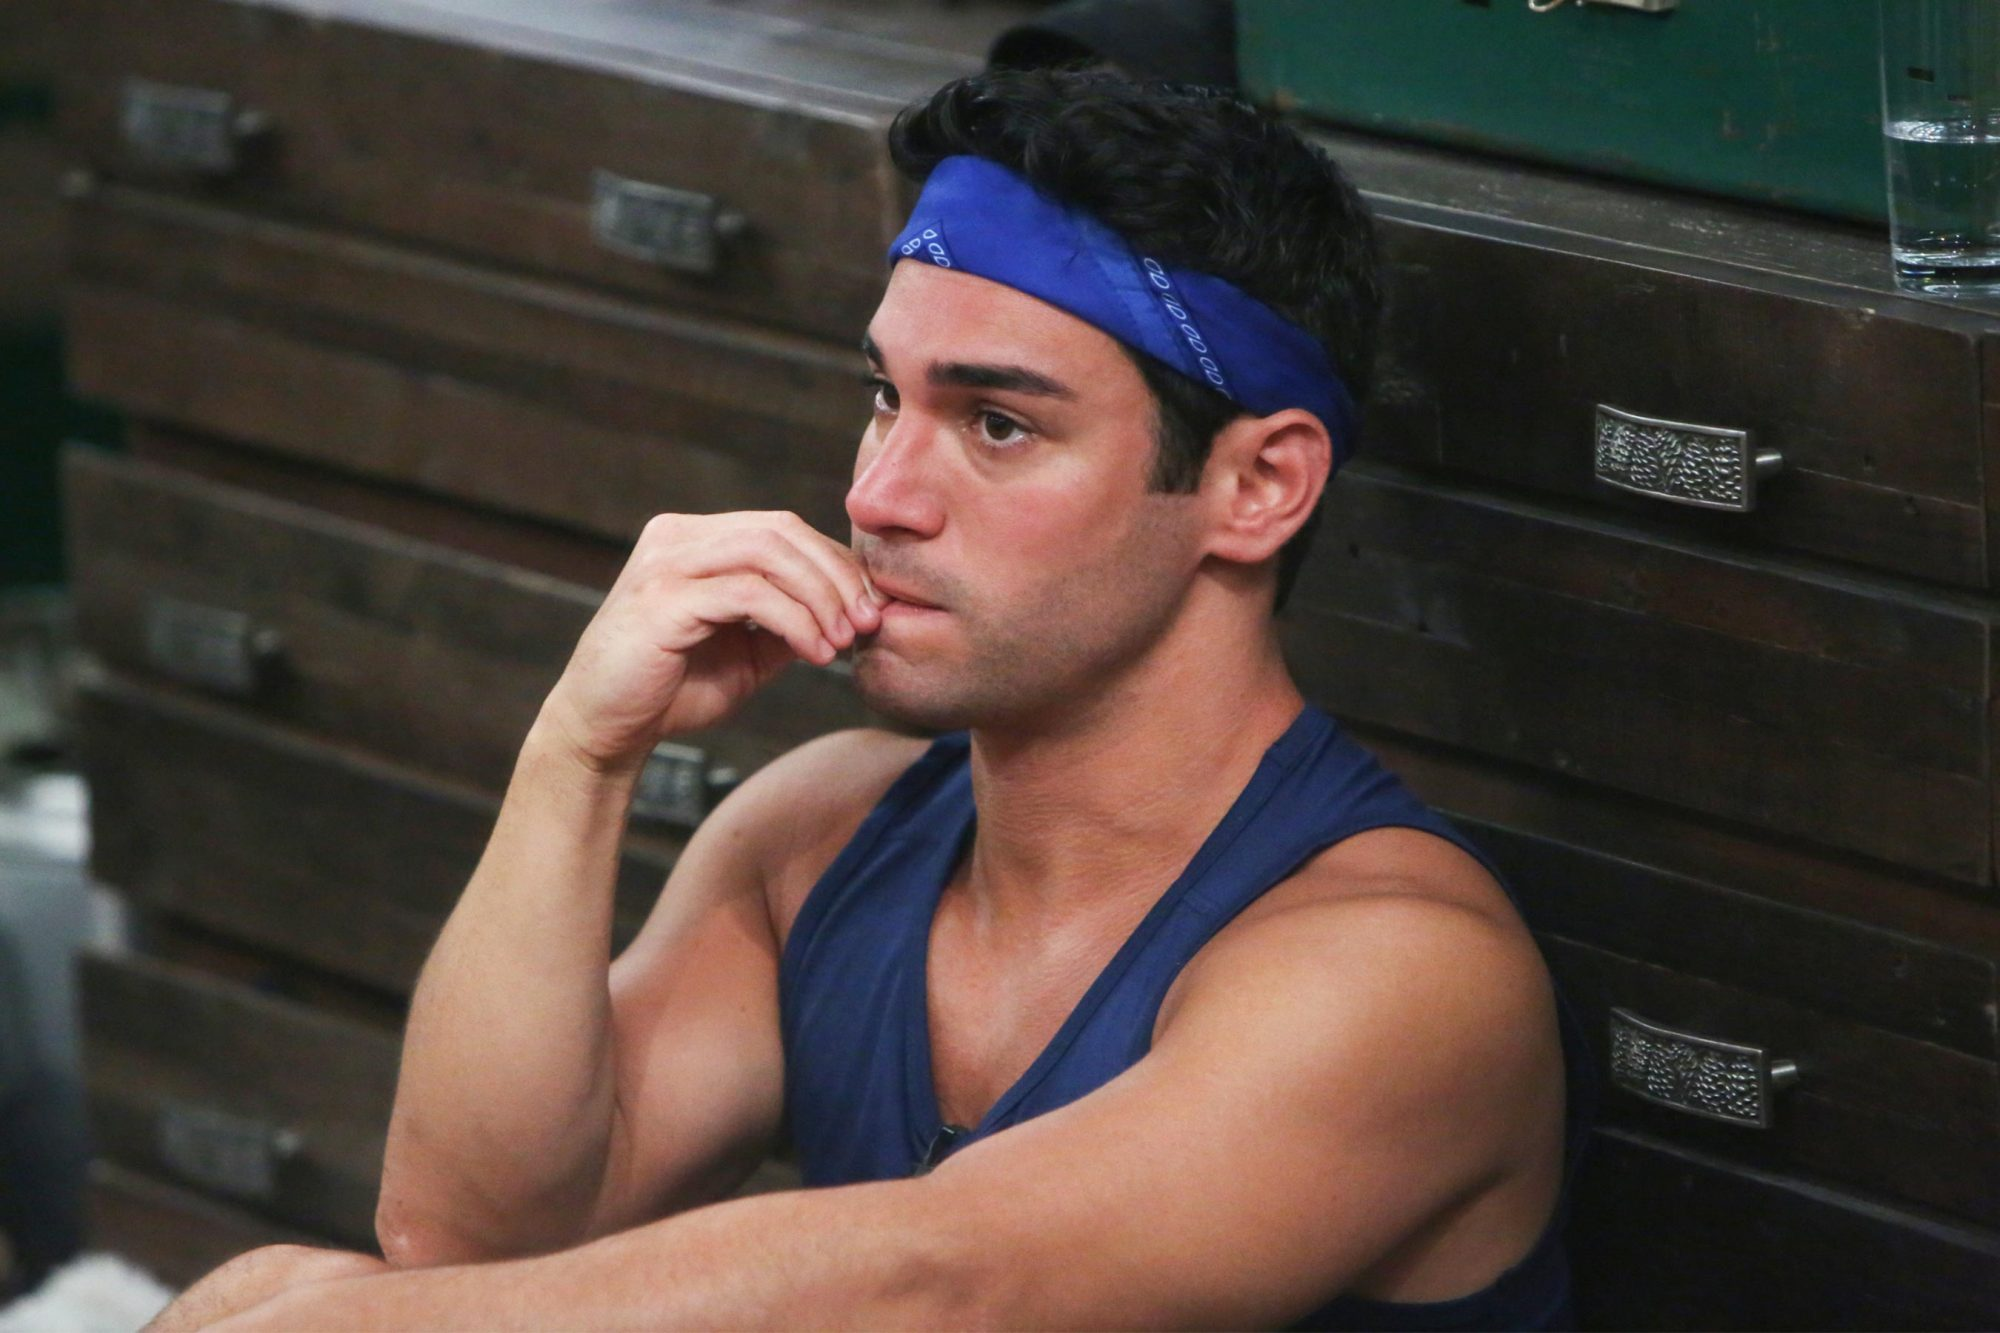 Tommy Bracco on Big Brother. BiIG BROTHER airs Wednesdays (9:00-10:00 PM, ET/PT), Thursdays, featuring the live evictions (9:00-10:00 PM, LIVE ET/Delayed PT) and Sundays (8:00-9:00 PM, ET/PT). Reserved Photo: Monty Brinton/CBS ©2018 CBS Broadcasting, Inc. All Rights Reserved